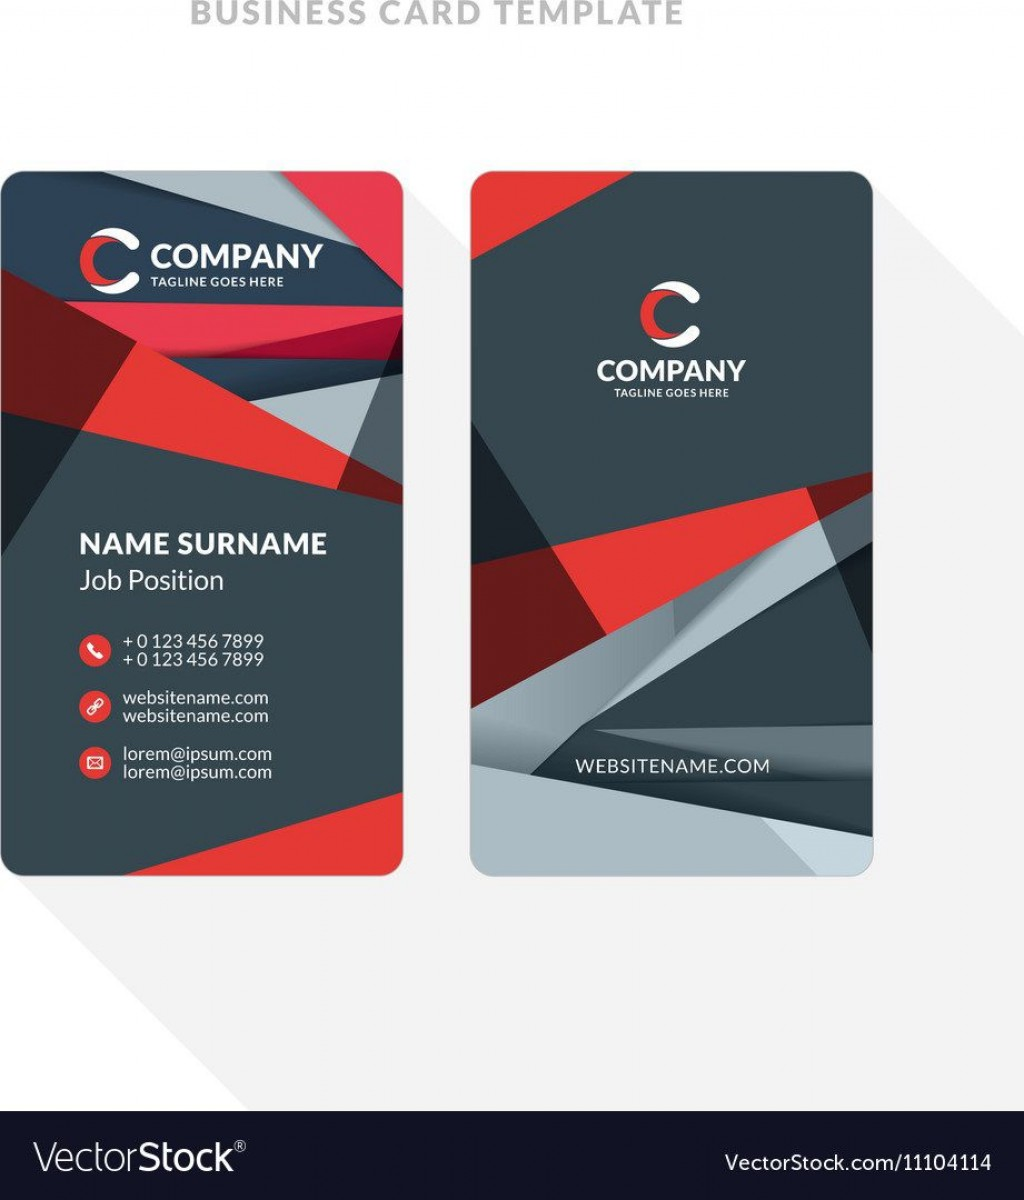 010 Excellent Double Sided Busines Card Template Sample  Templates Word Free Two MicrosoftLarge